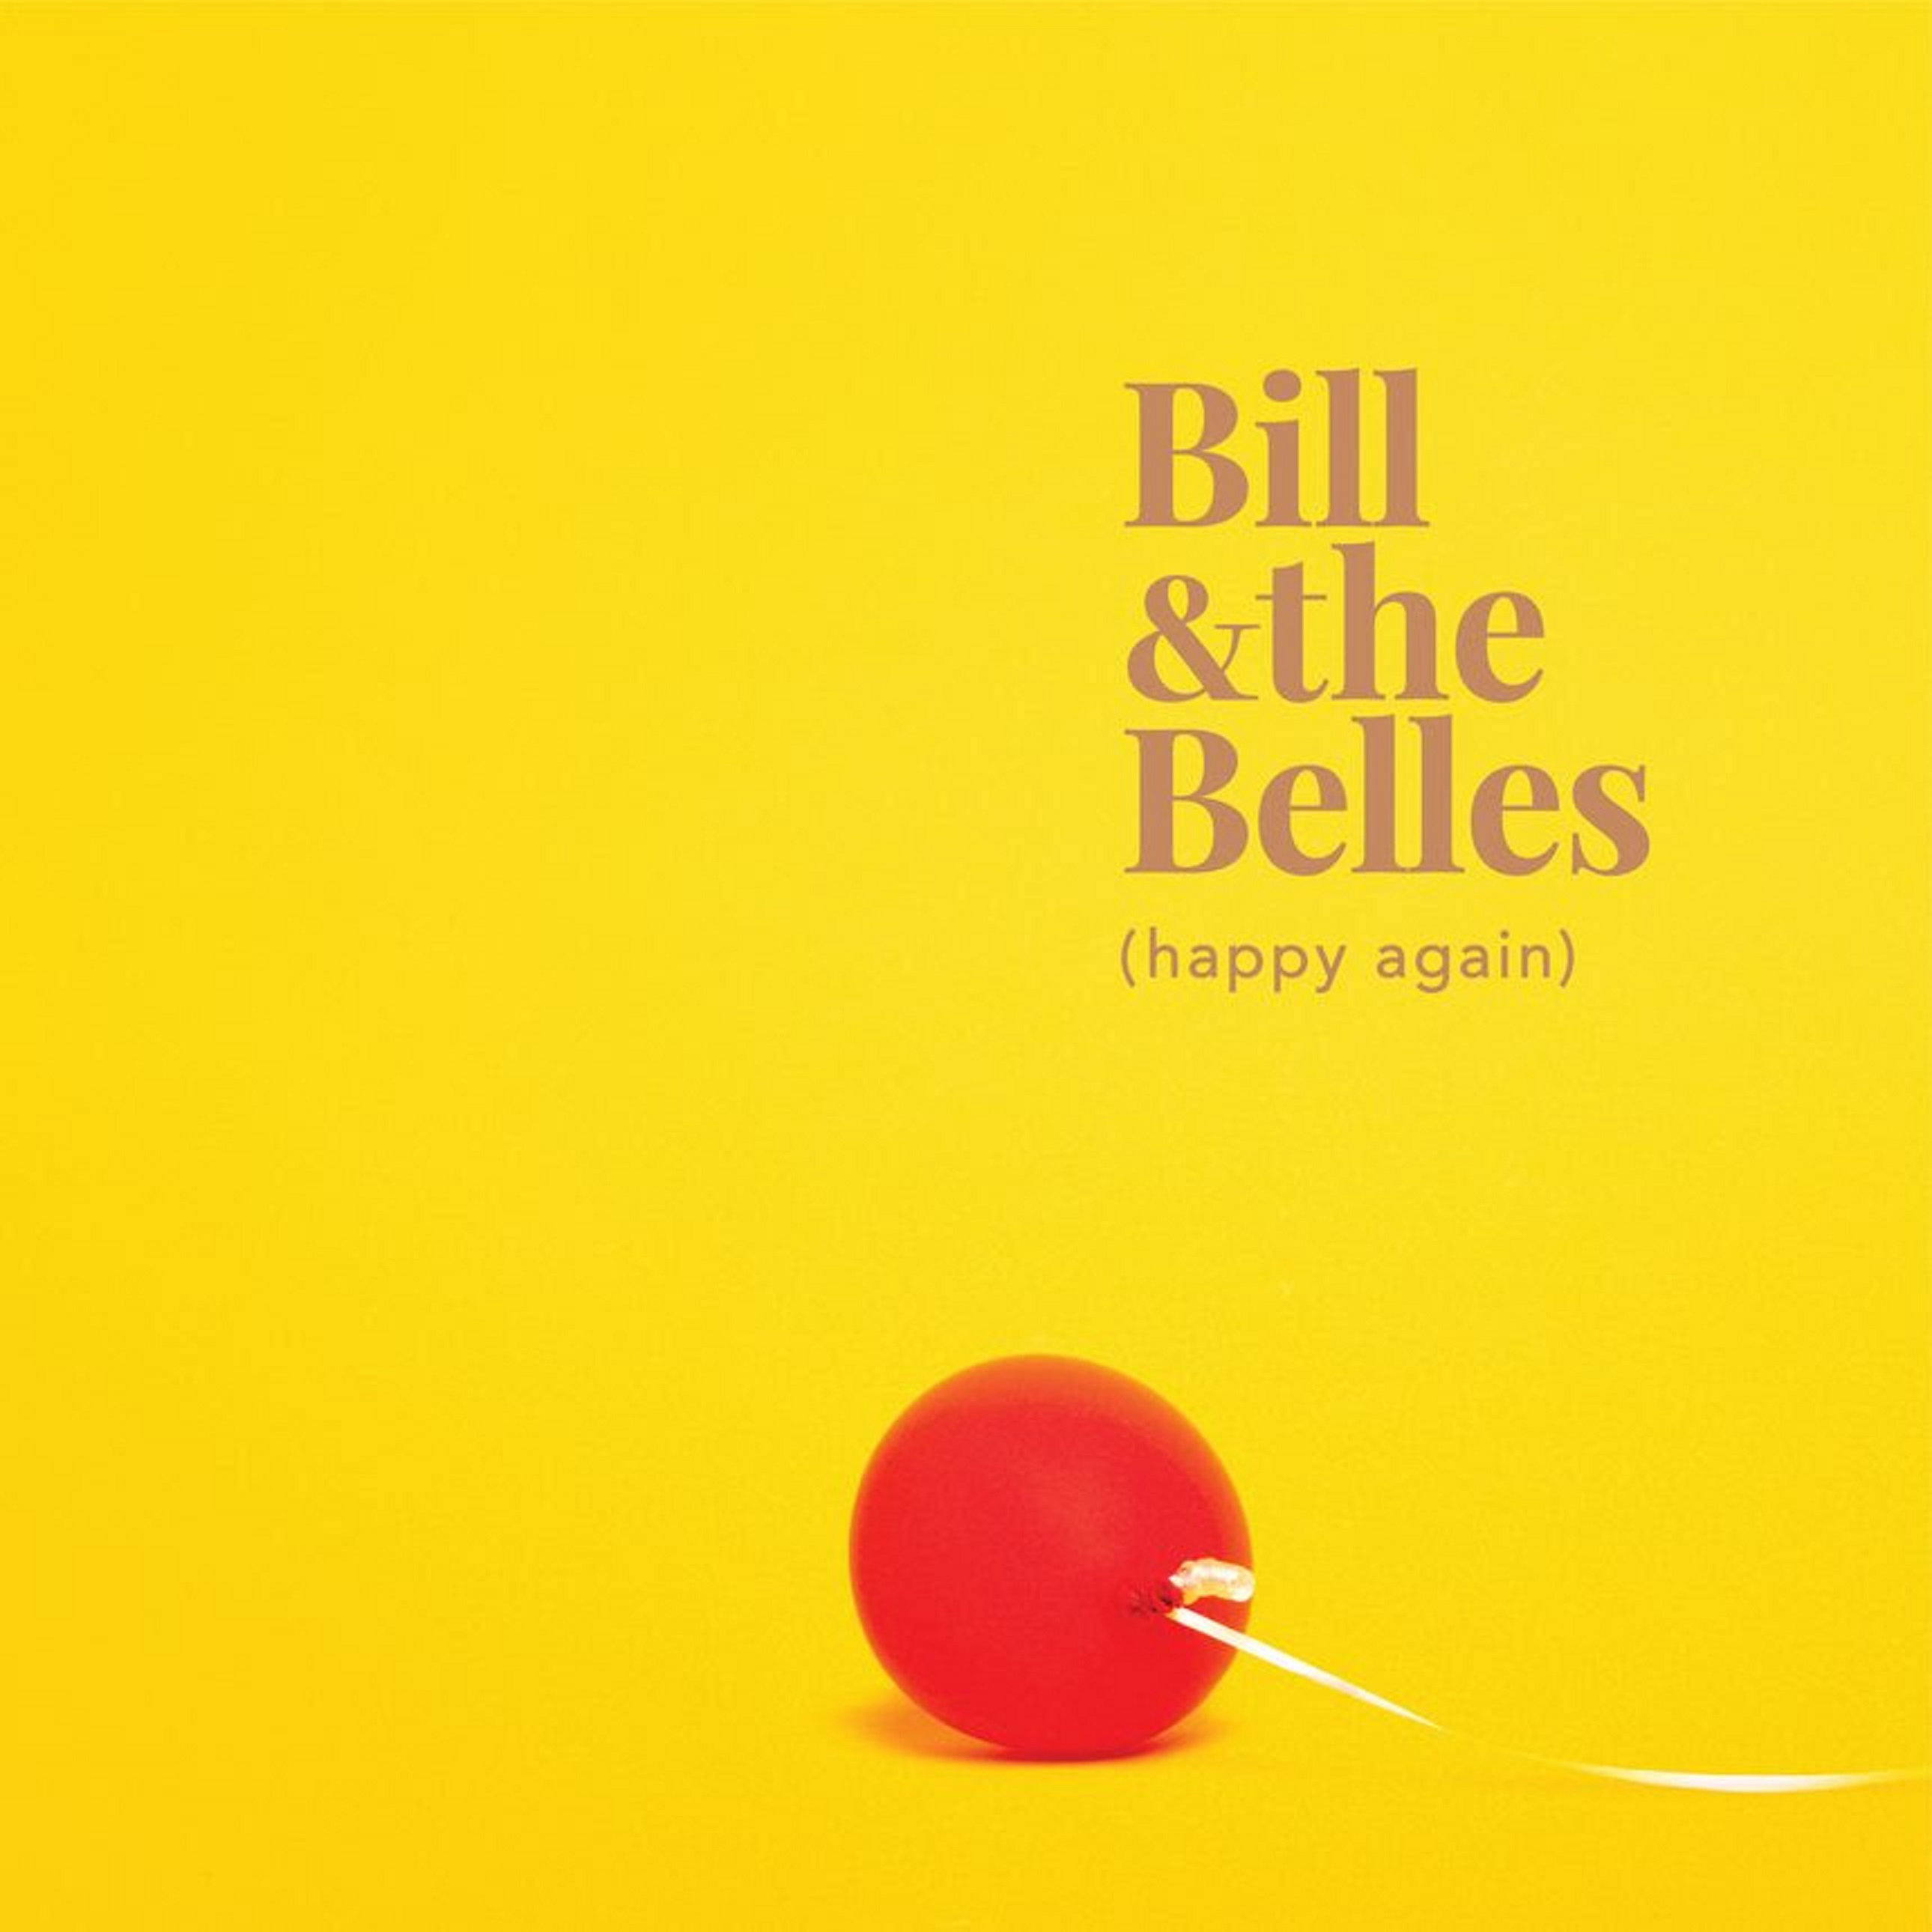 Bill and the Belles' new album, produced by Teddy Thompson, out May 21